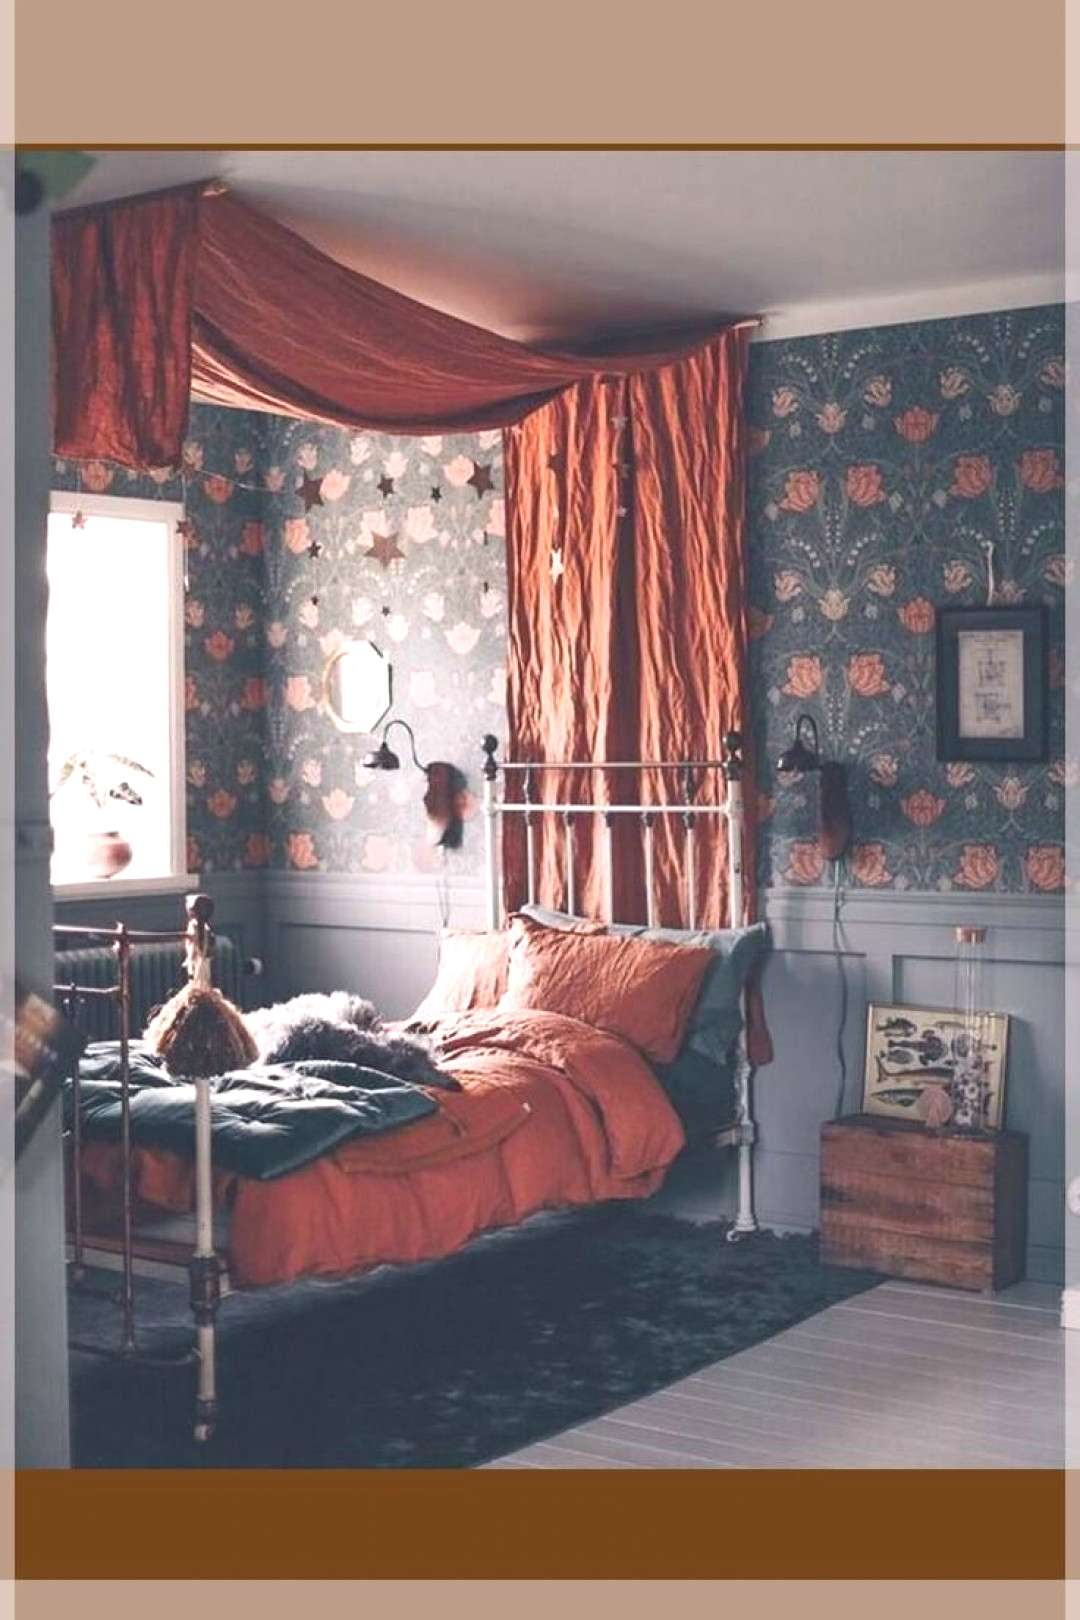 Four-poster bed and flowers That was my childhood ~ ETS Four-poster bed and flowers That was my